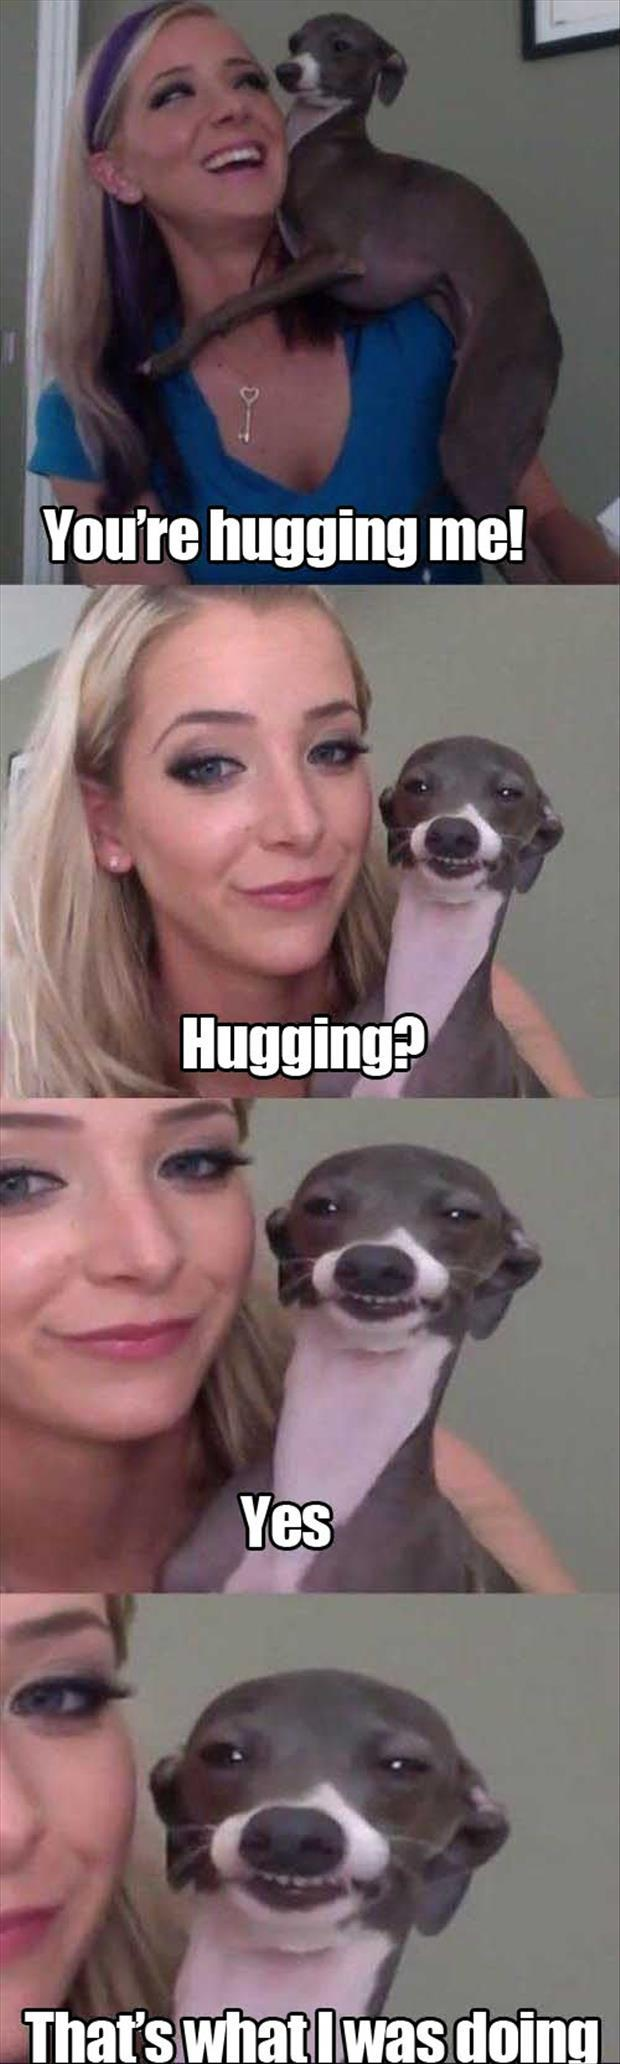 hugging dog